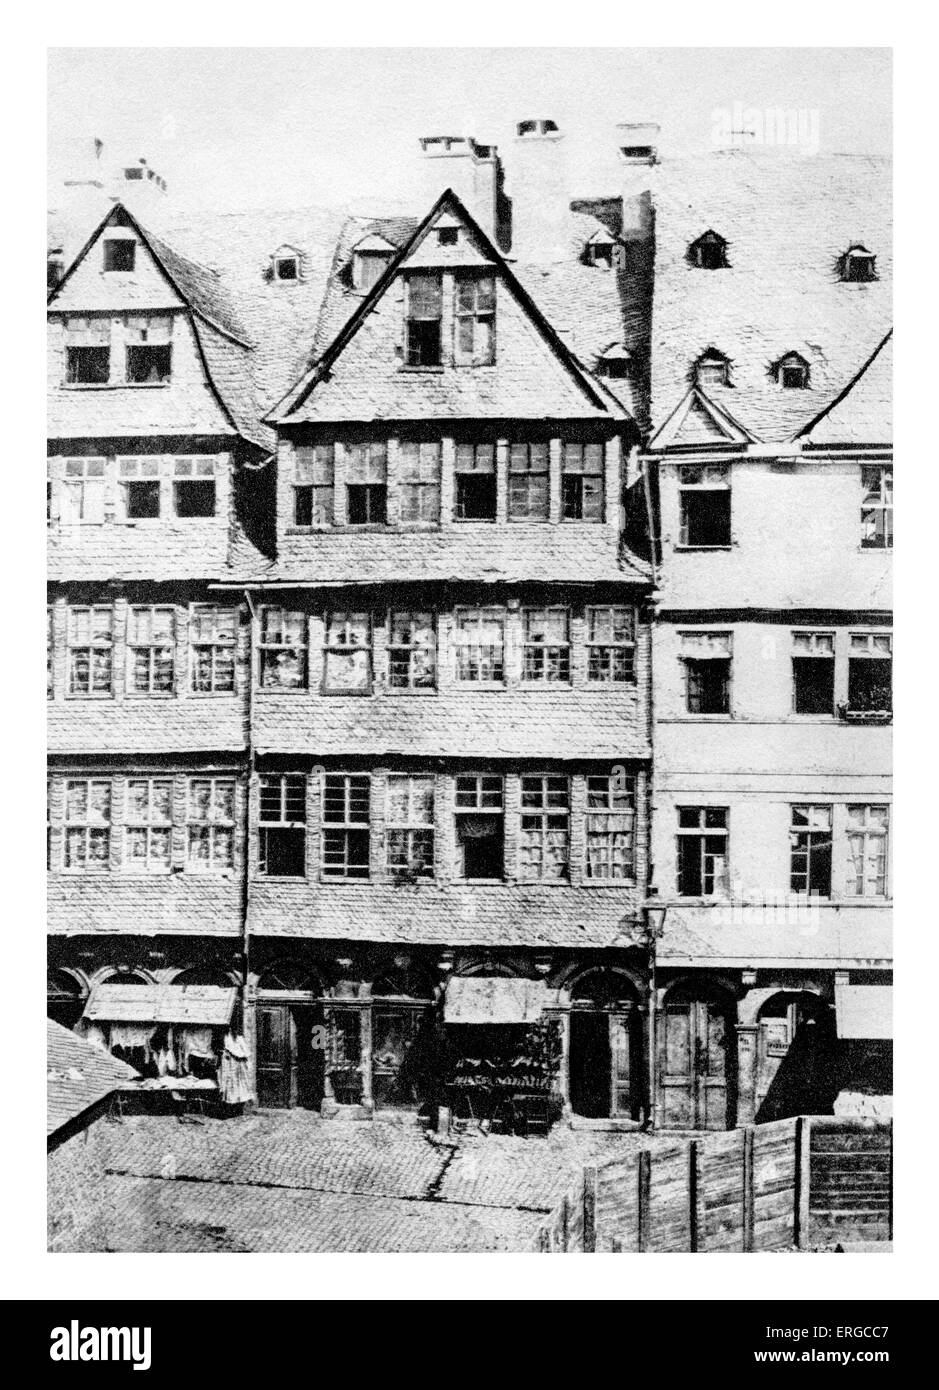 Ancestral home of the Rothschild Family in Frankfurt am Main. - Stock Image